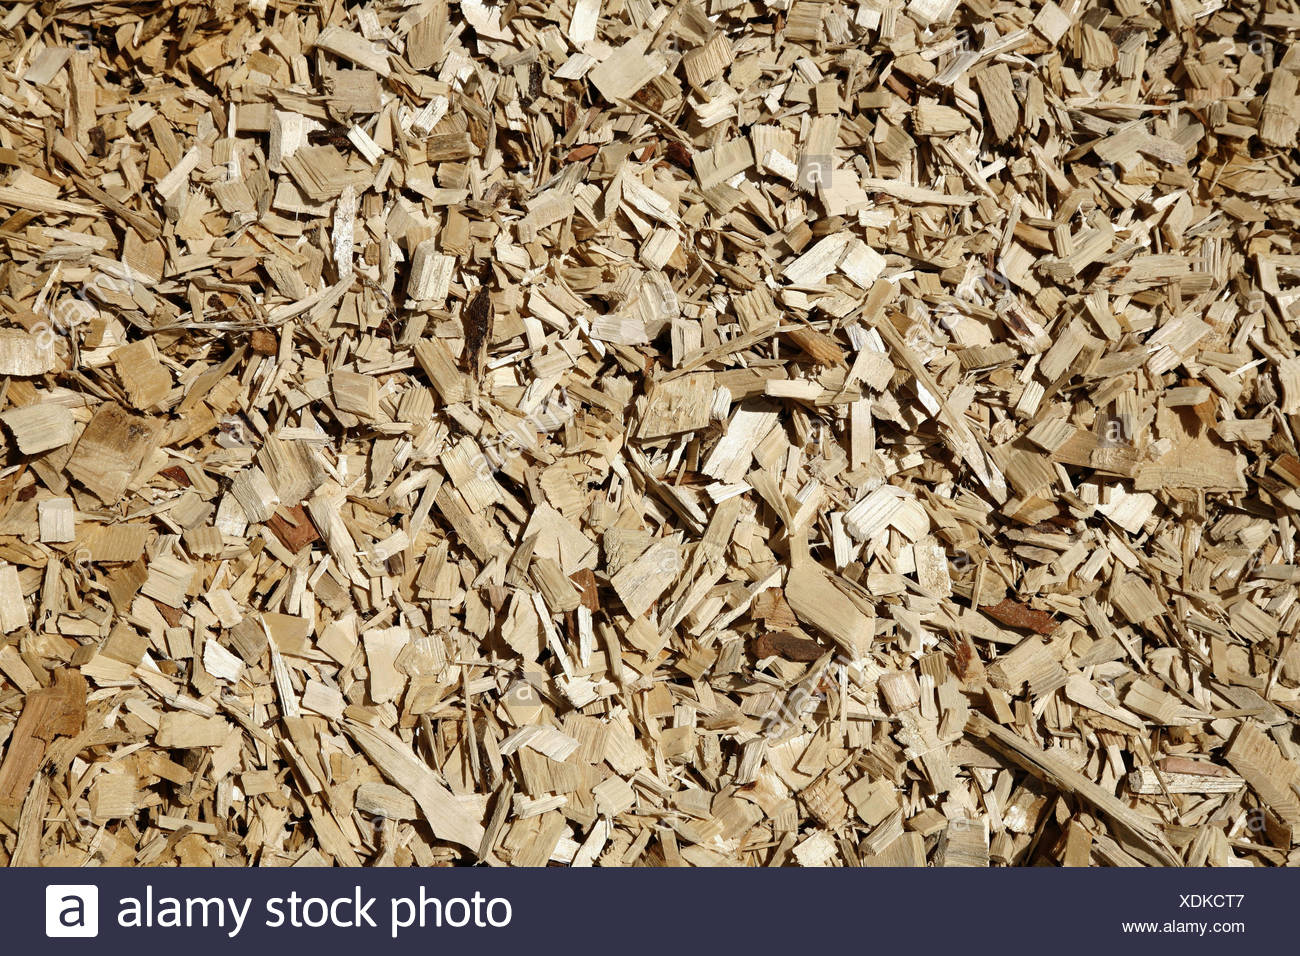 Hack cutlet, medium close-up, wooden, heating, wooden heating, hack cutlet heating, efficiency, environment, environmental care, copy space, background, shredded, wooden cutlet, - Stock Image